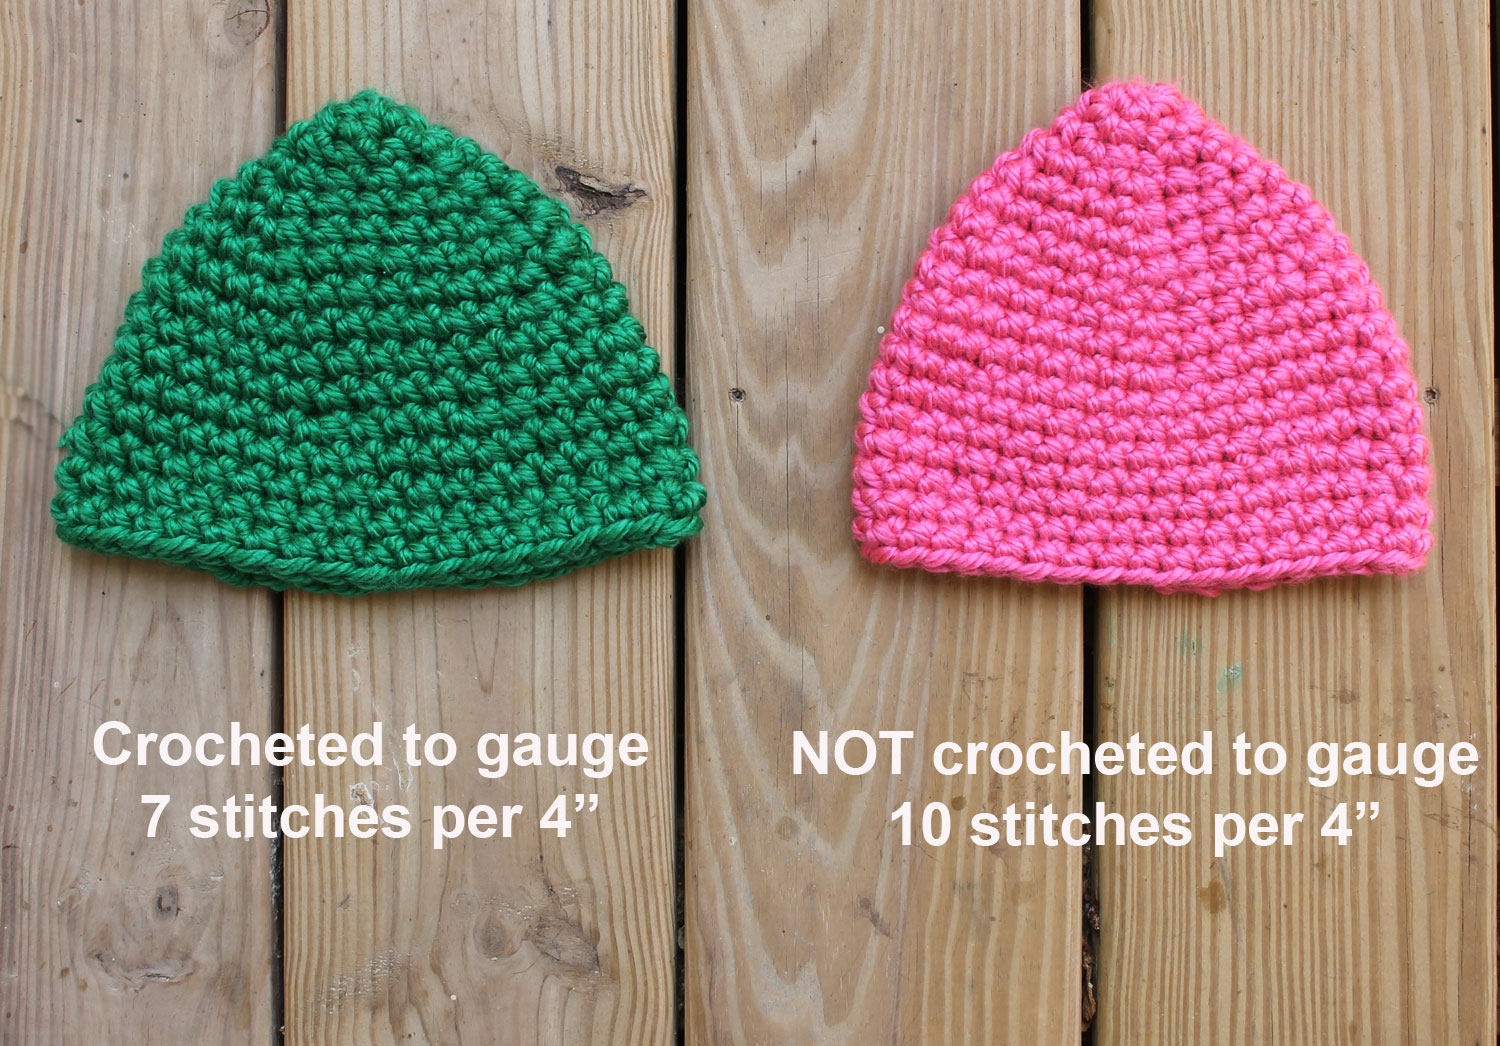 Crochet Gauge for Hats